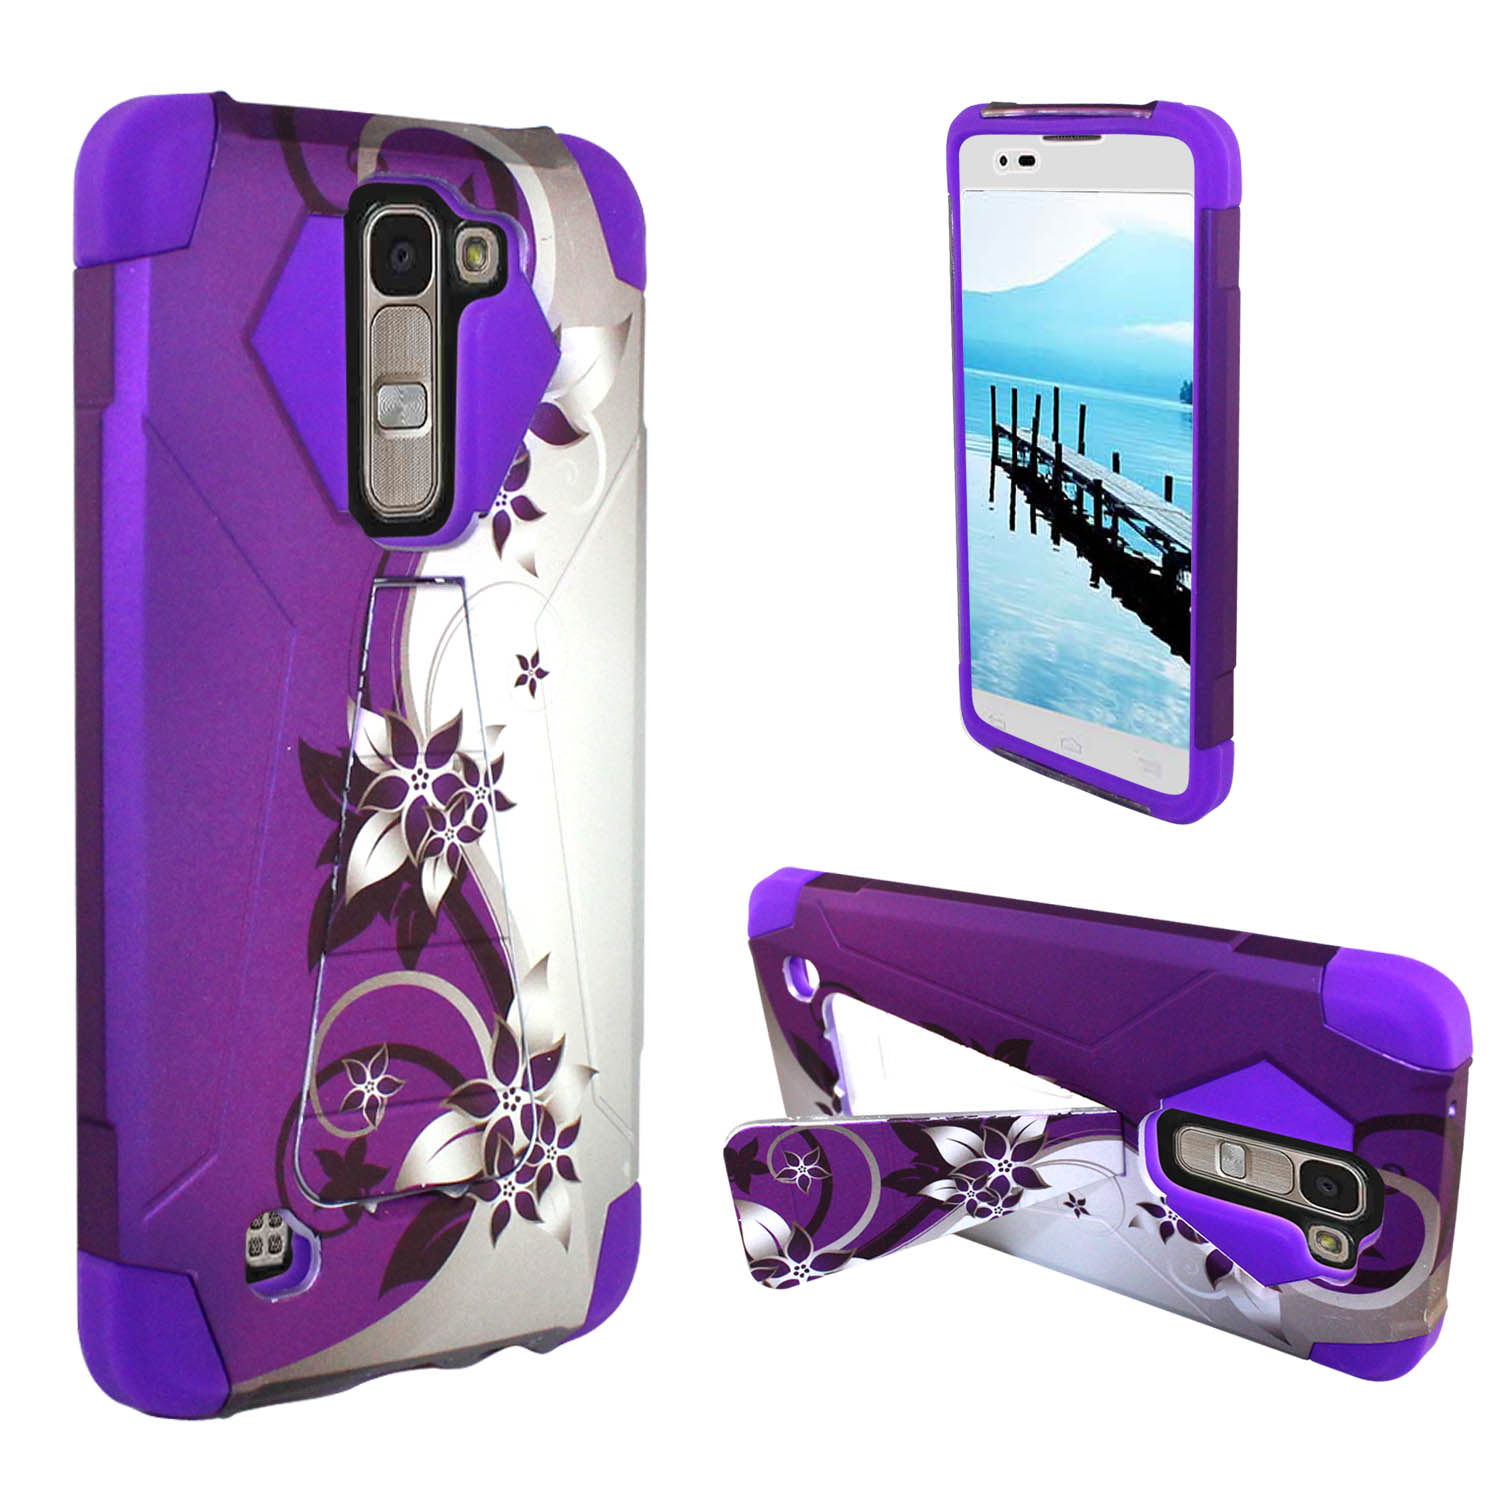 Zizo® Hybrid Turbo Design Case for LG K7 Heavy Duty Dual Layer Rugged Shell Design Protective Phone Cover w/ Kickstand